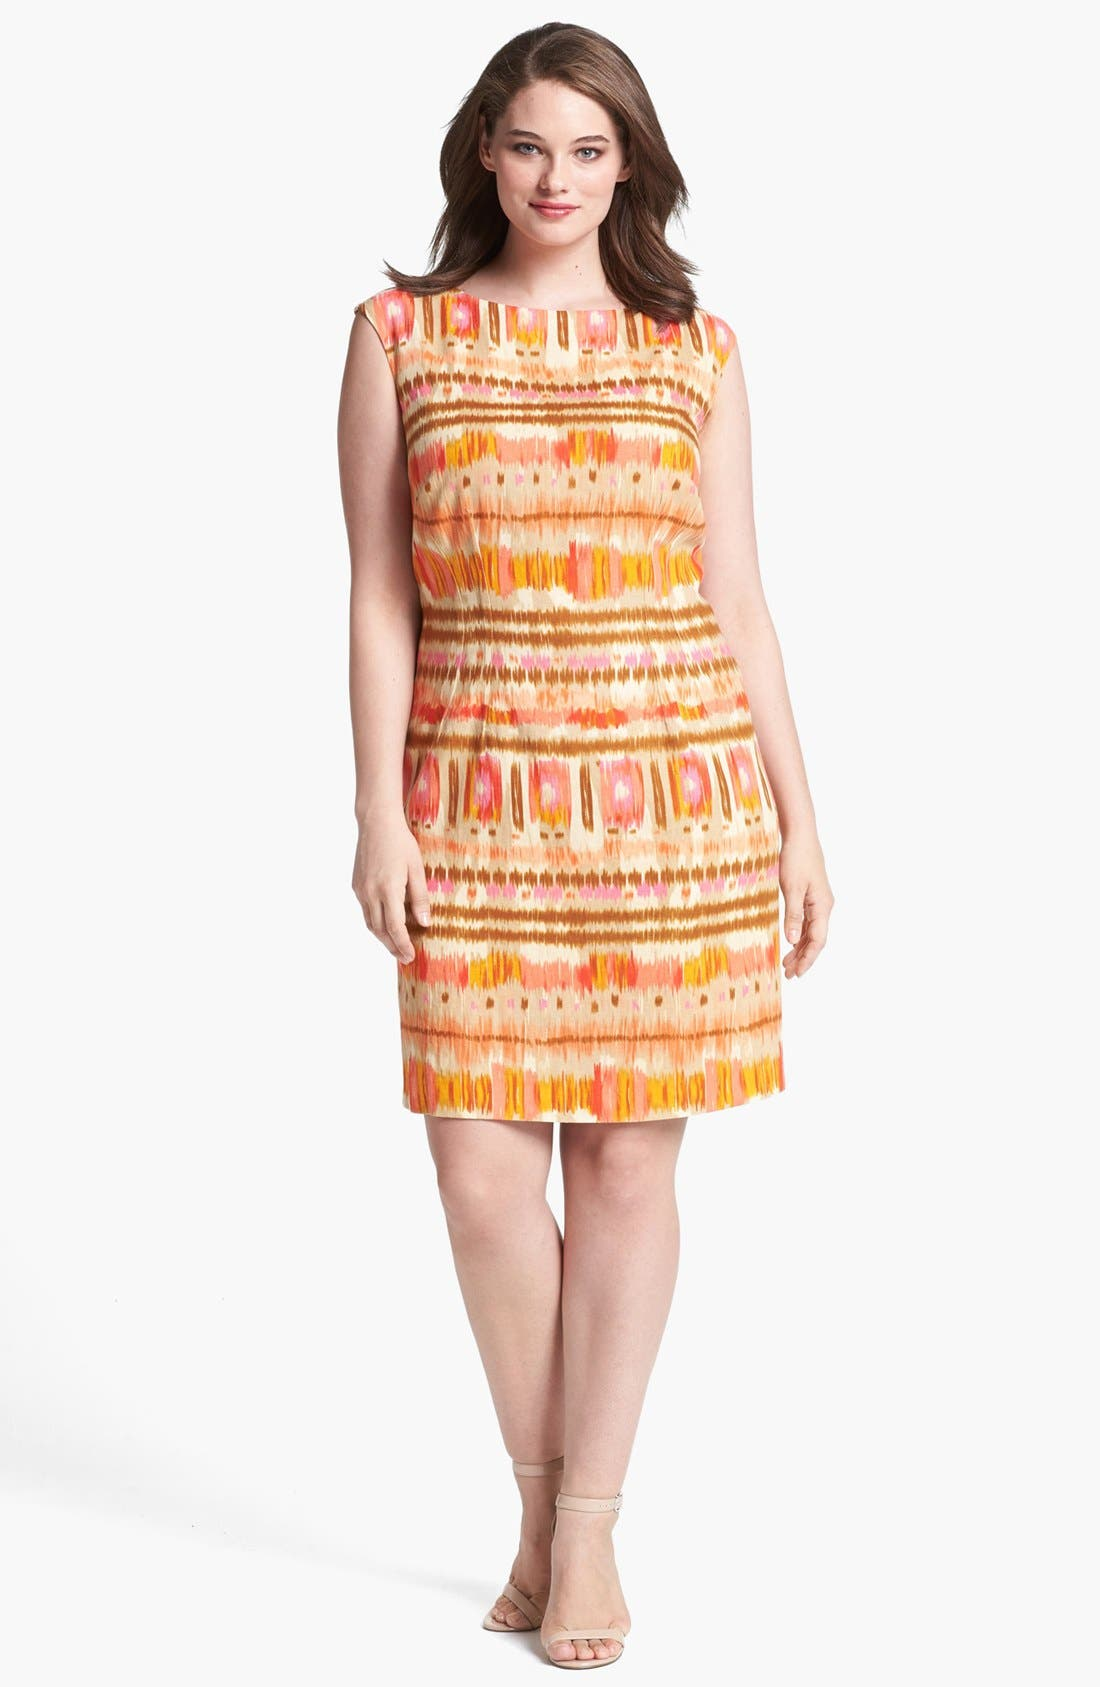 Alternate Image 1 Selected - Tahari Ikat Print Sheath Dress (Plus Size)